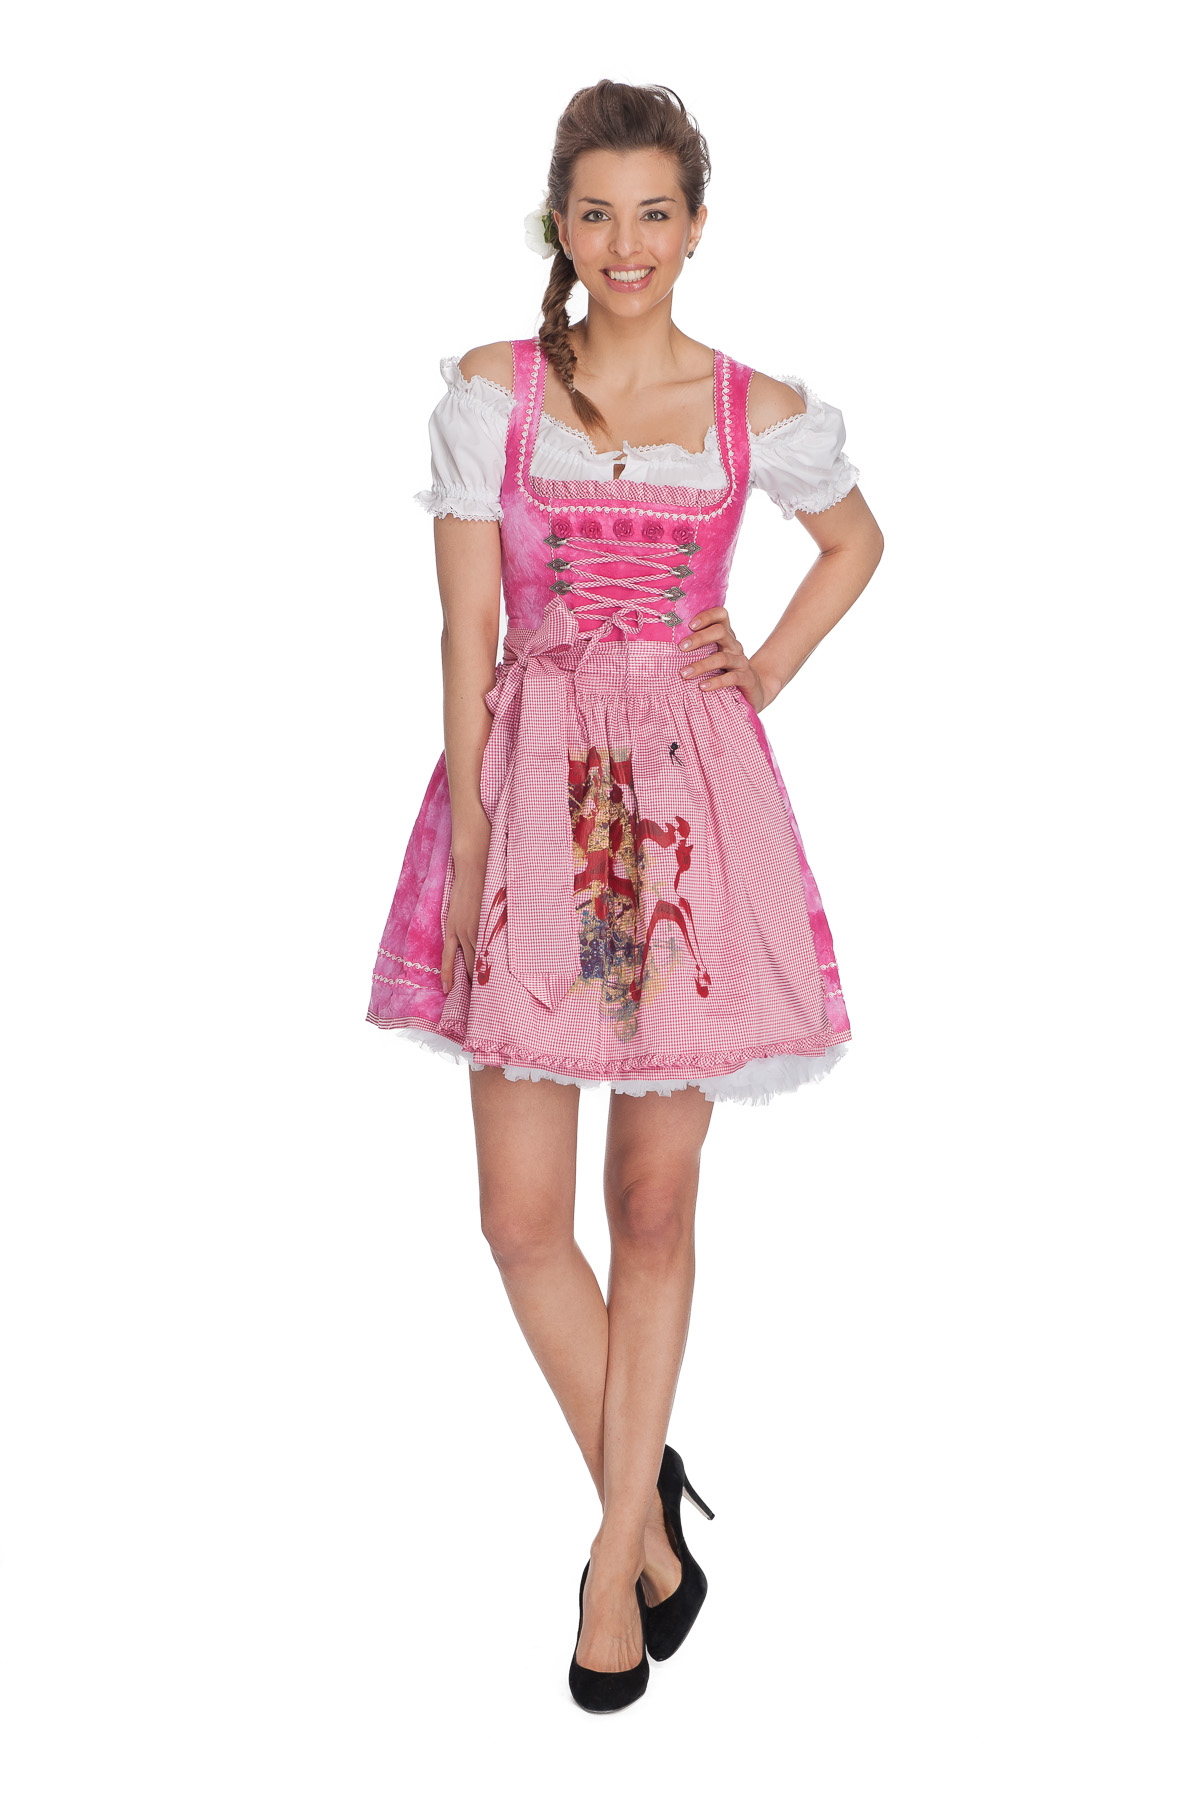 kr ger madl mini dirndl pink dream batiklook ebay. Black Bedroom Furniture Sets. Home Design Ideas